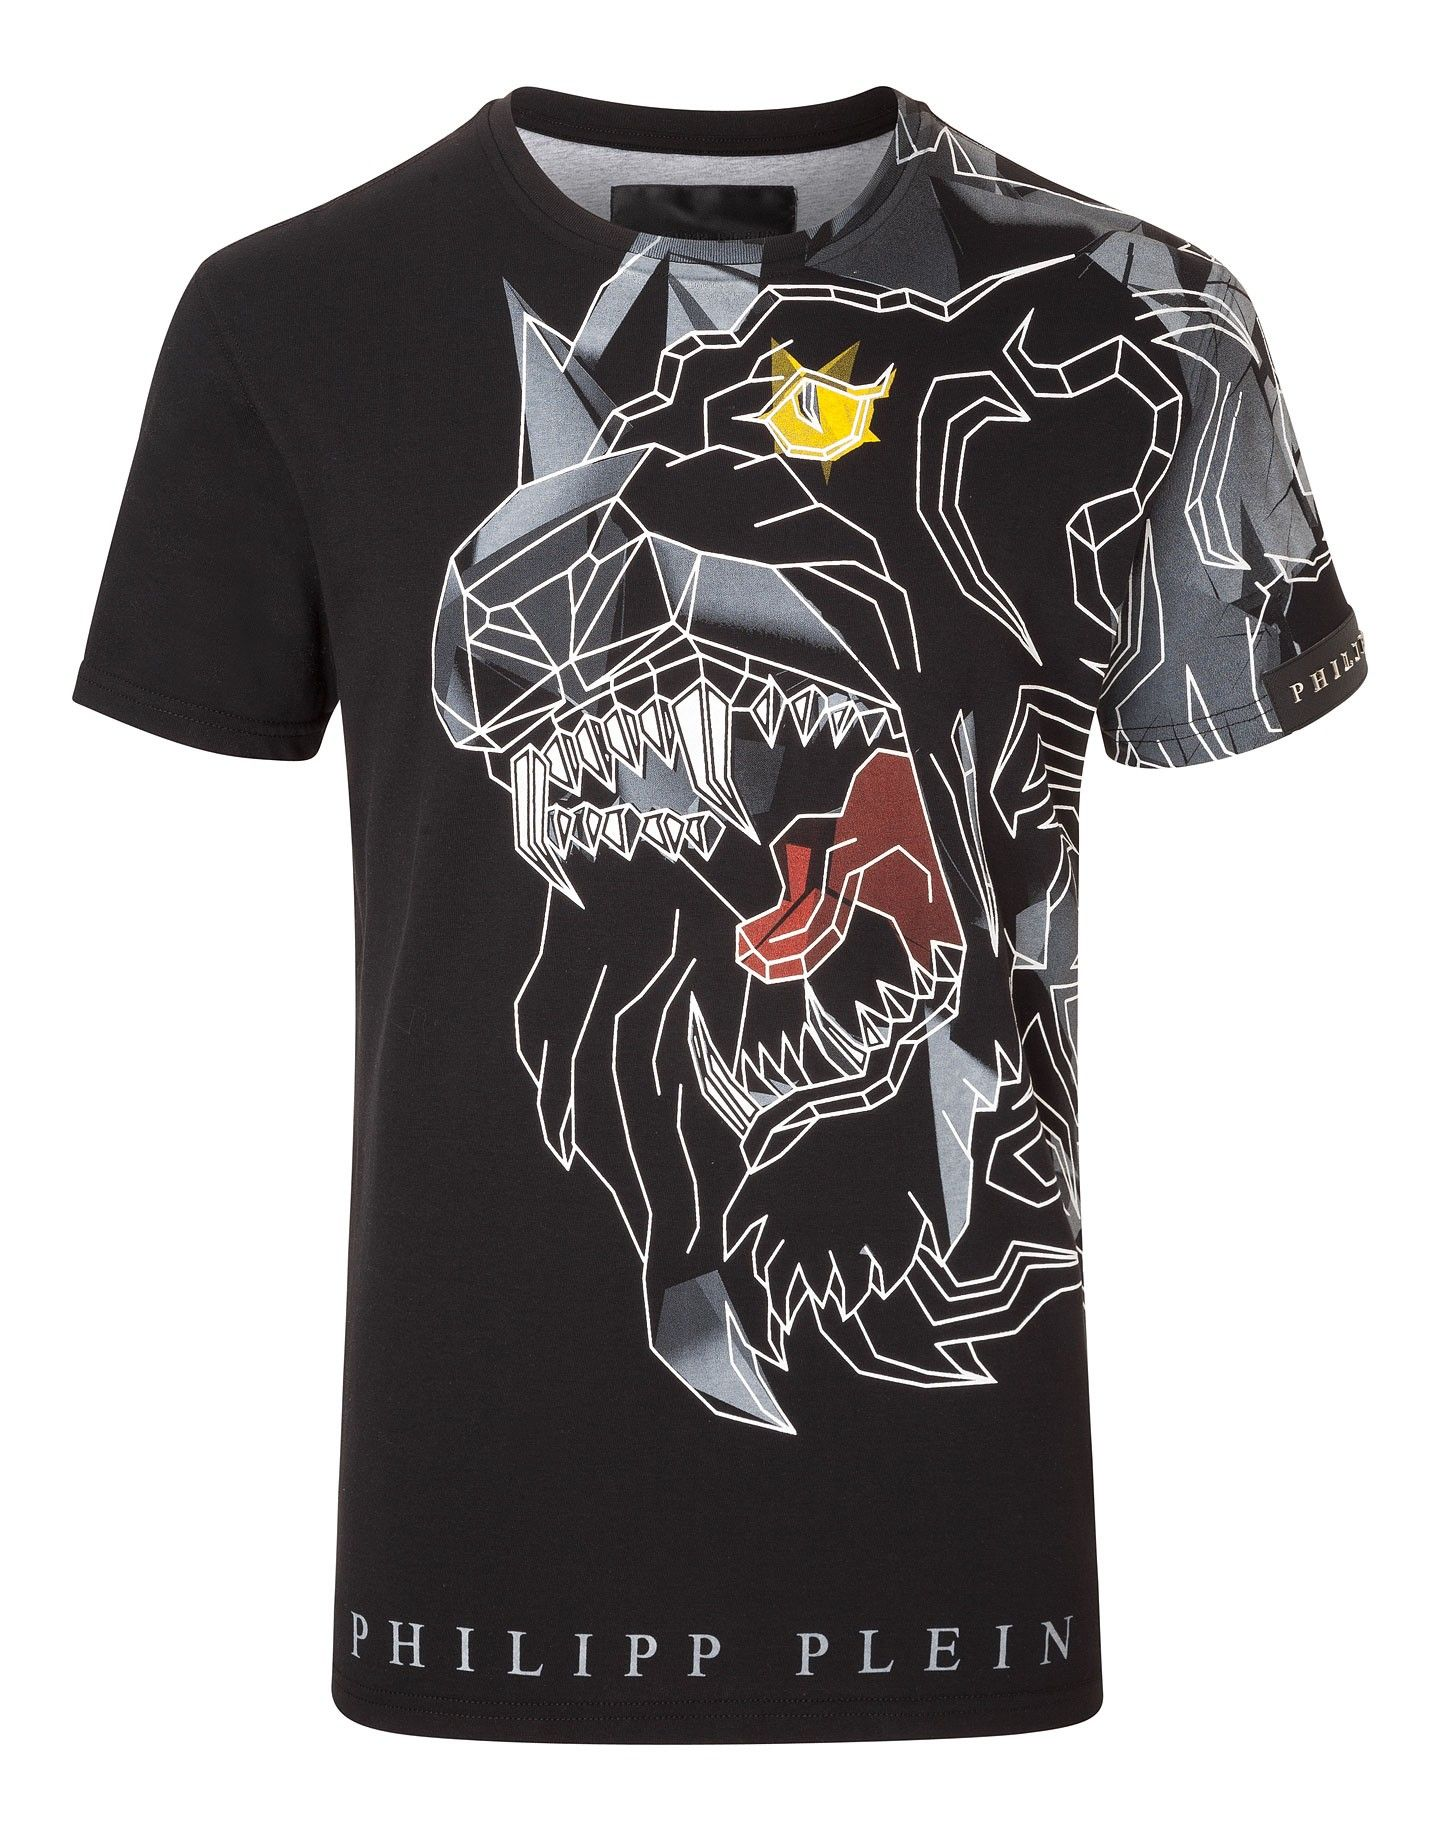 "PHILIPP PLEIN T-SHIRT ""LION FORCE"". #philippplein #cloth #"